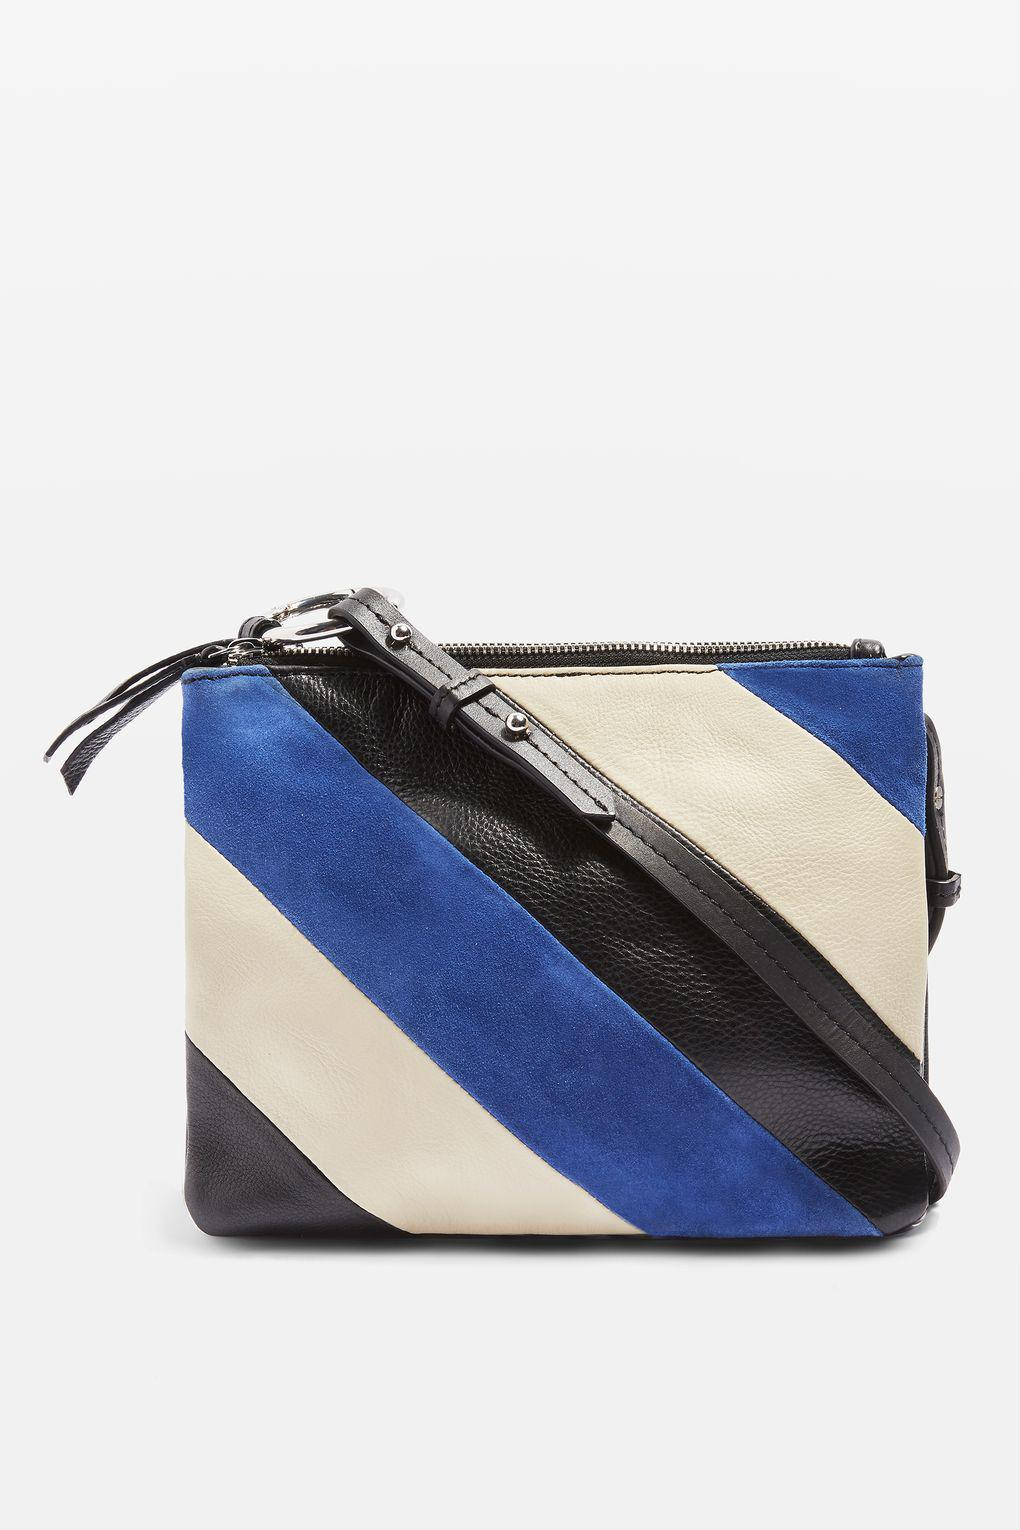 d4c793494f TOPSHOP Premium Leather Striped Cross Body Bag in Blue - Lyst